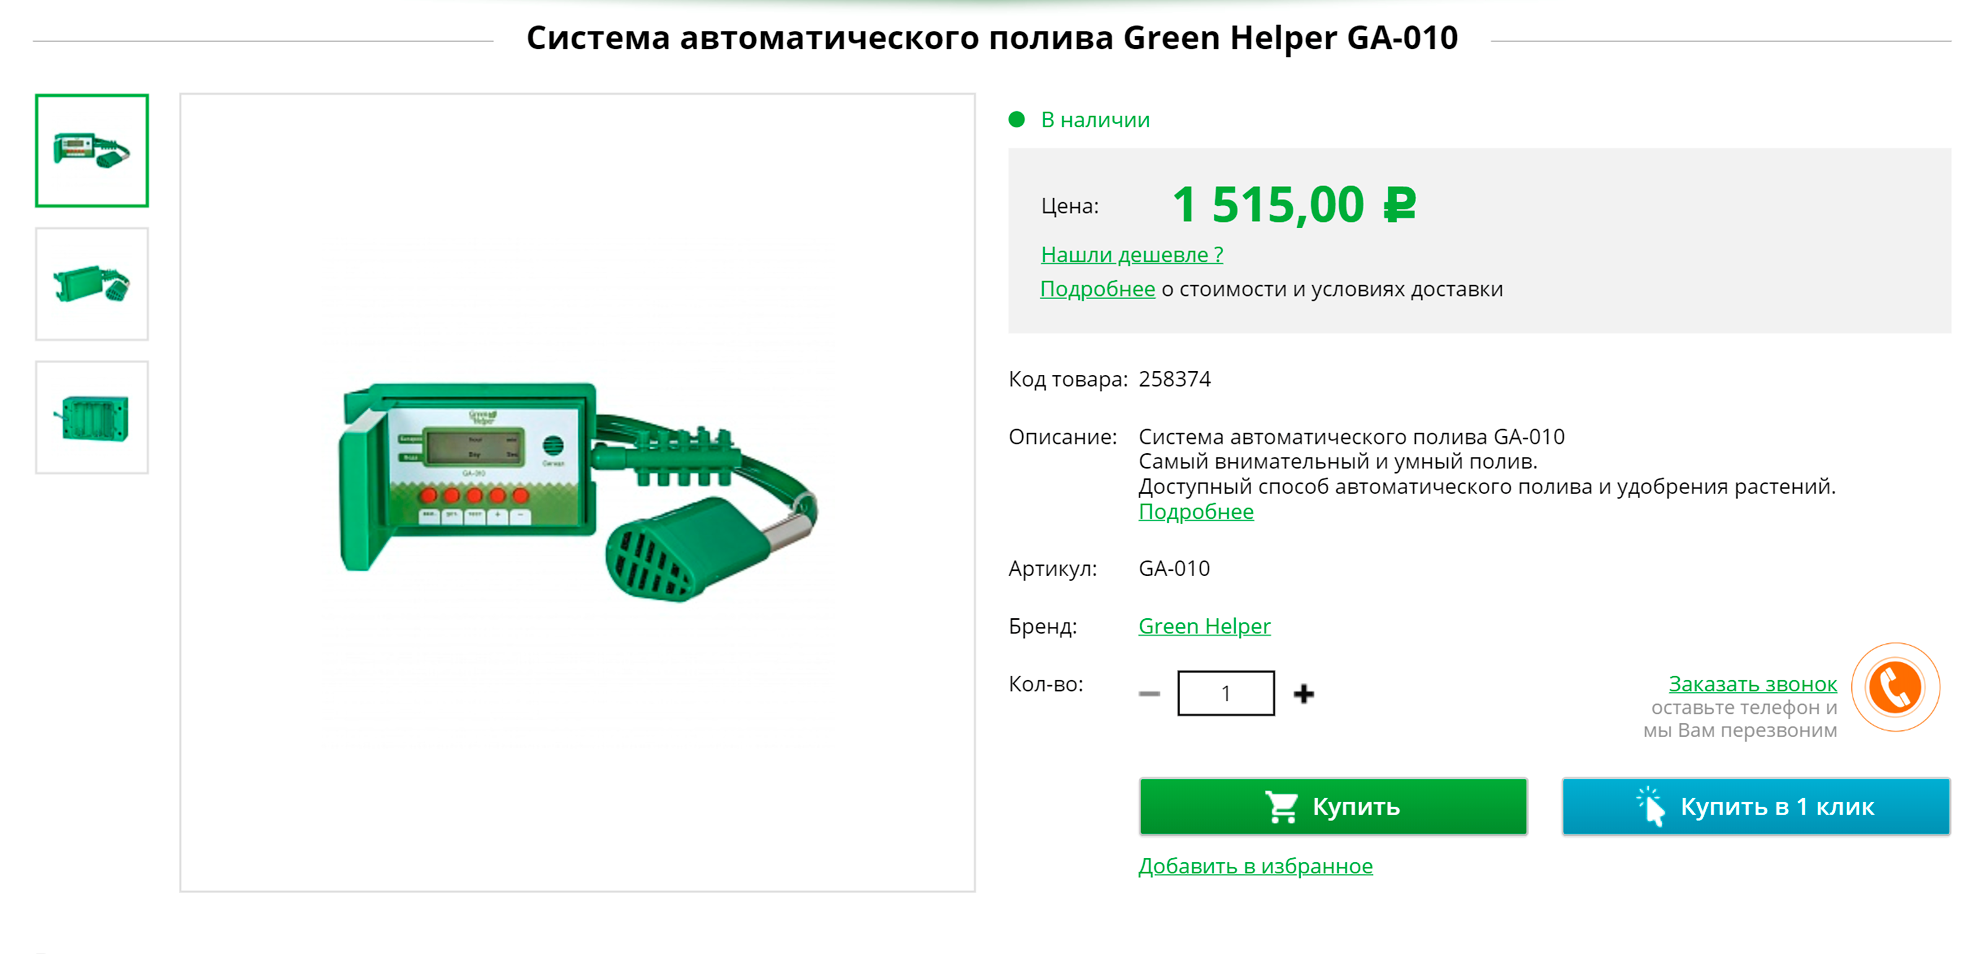 Система автополива Green Helper за 1515 р.